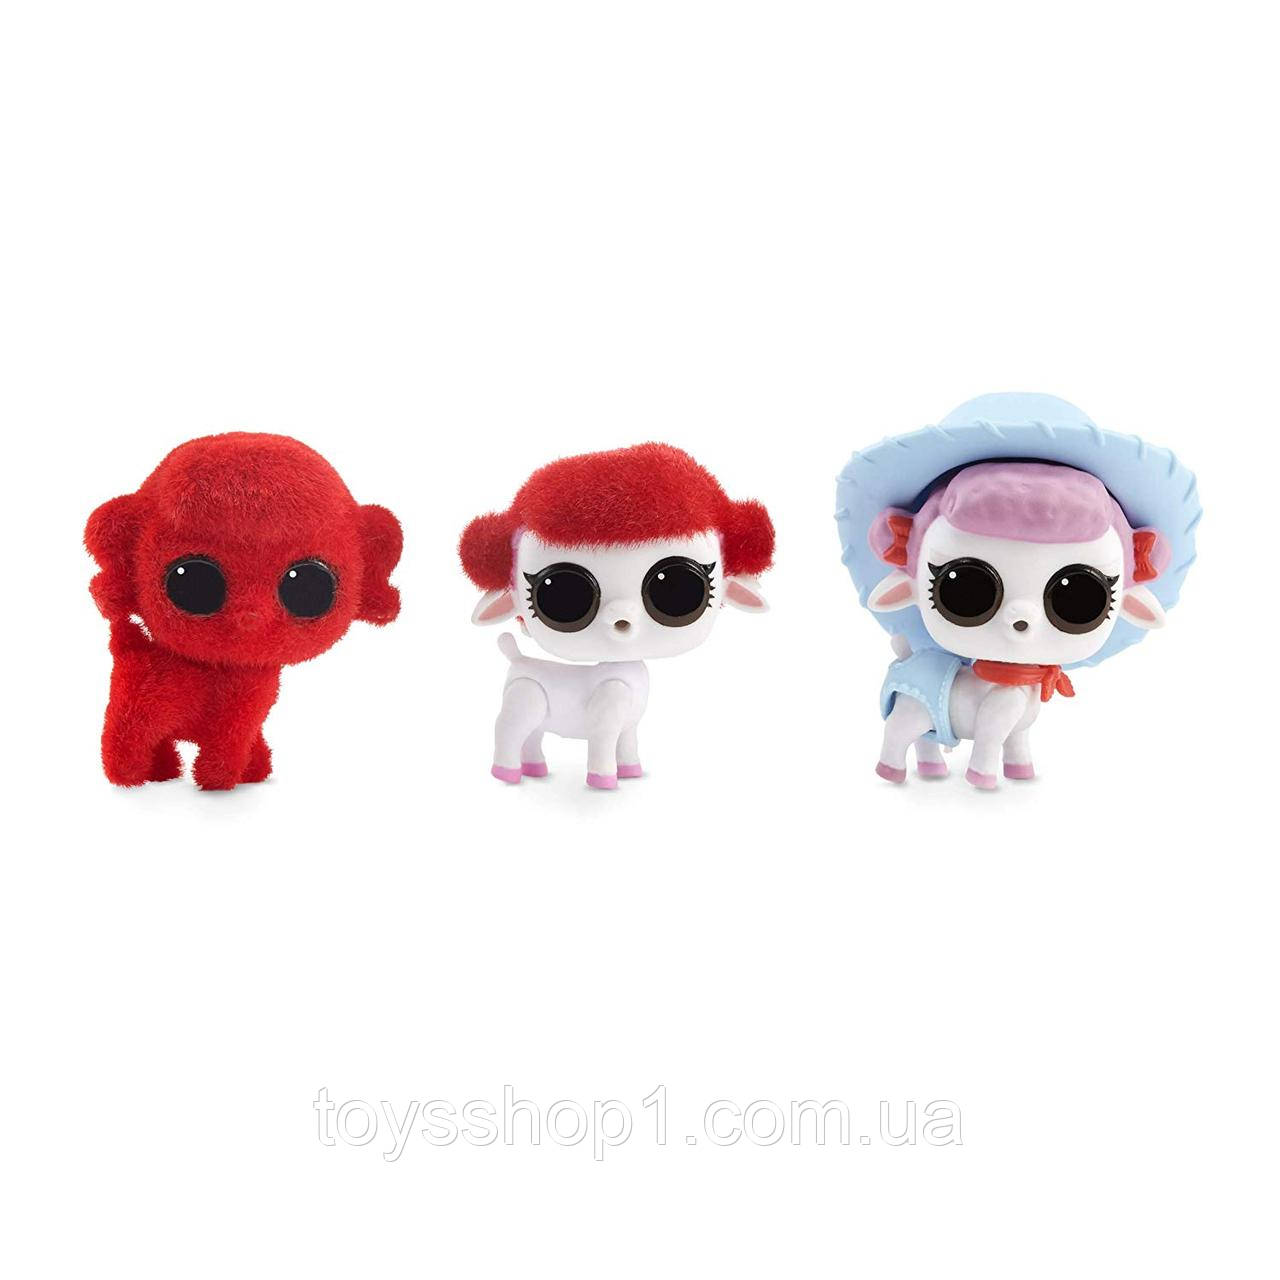 L.O.L. Surprise! Fuzzy Рets with Washable Fuzz ЛОЛ ...